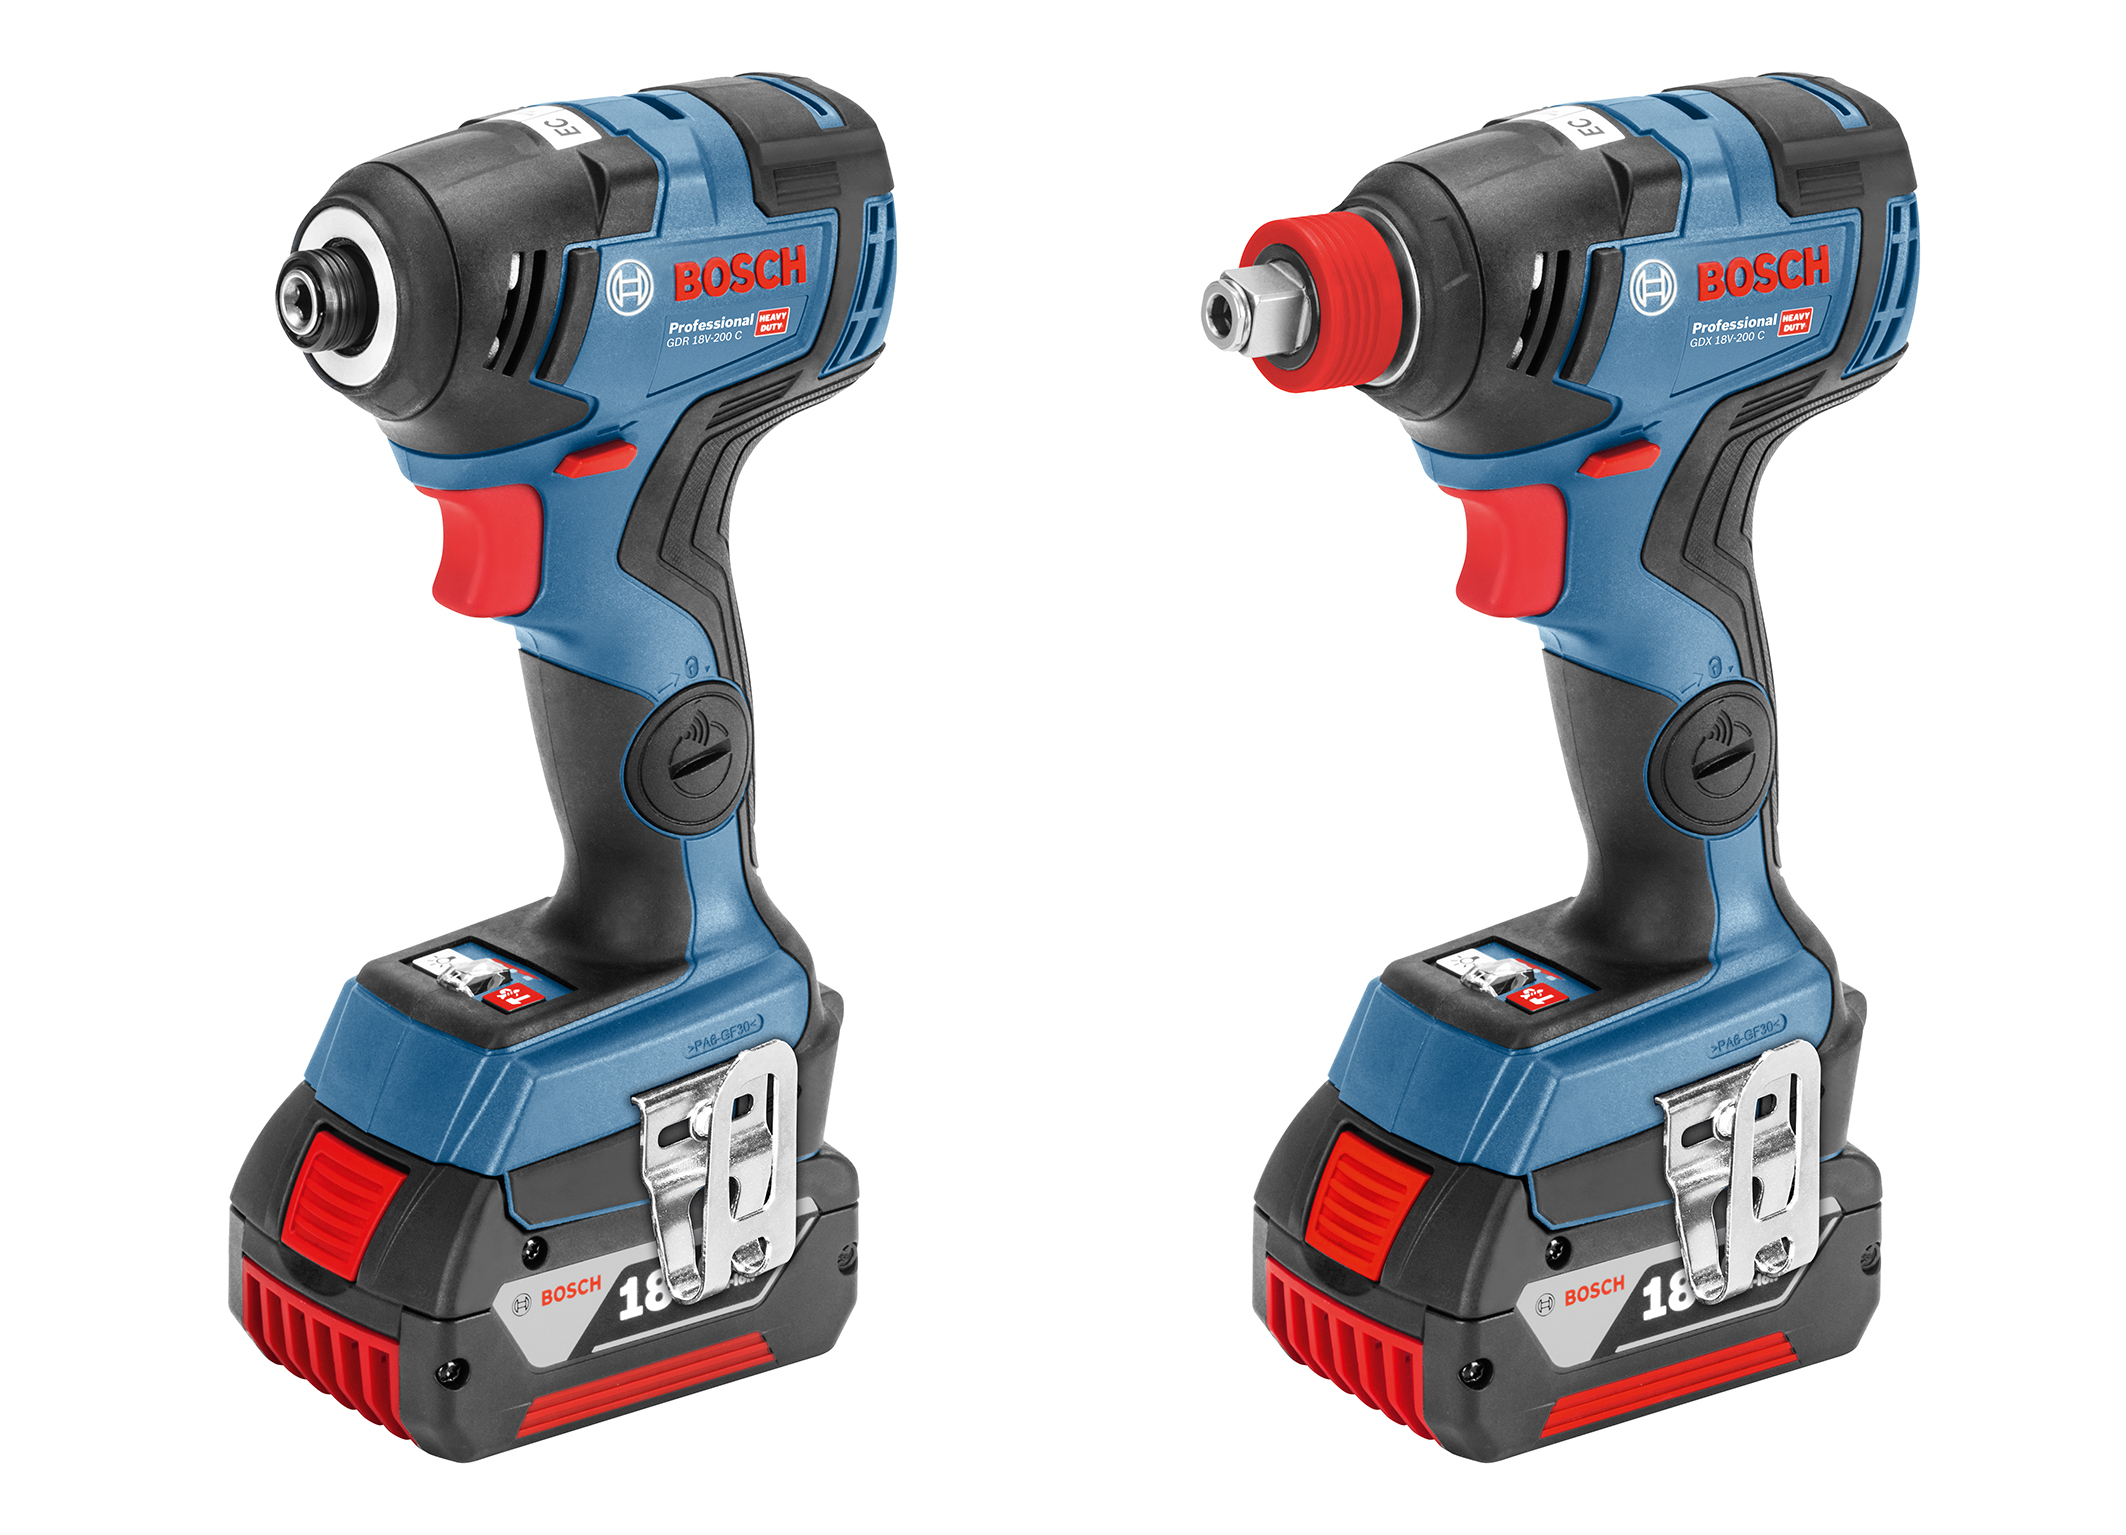 More powerful with an even more compact size: New cordless impact drivers from Bosch for professionals